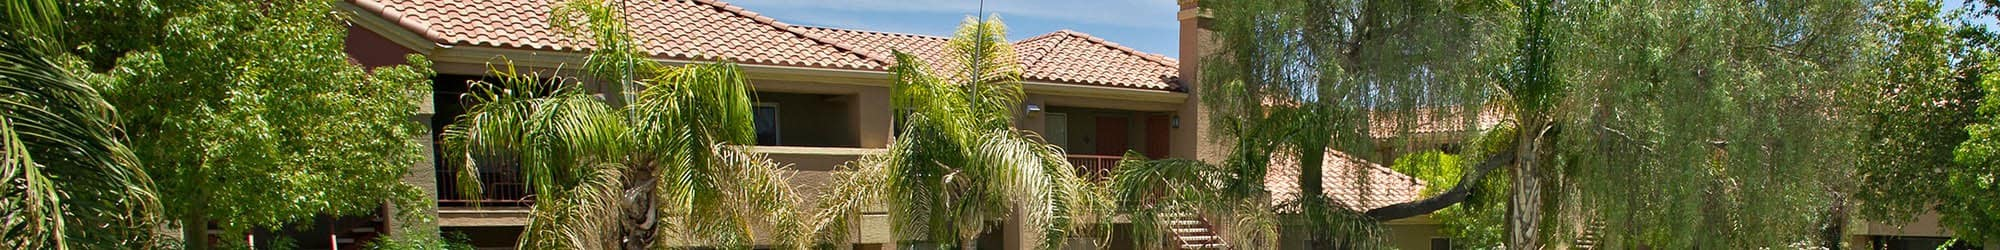 Wonderful neighborhood at the apartments for rent in Mesa